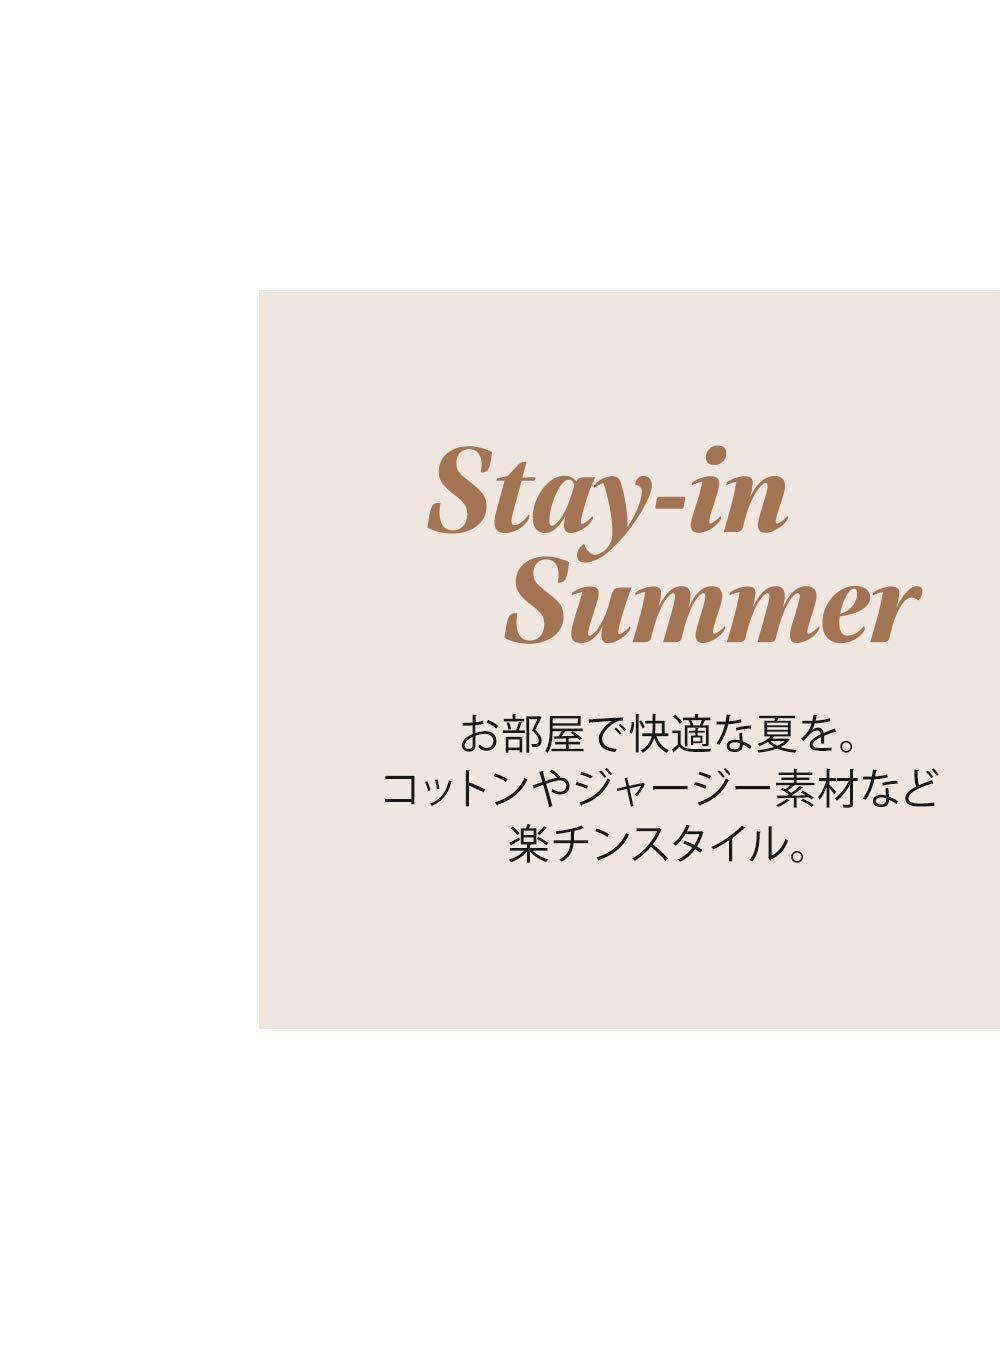 Stay-in Summer